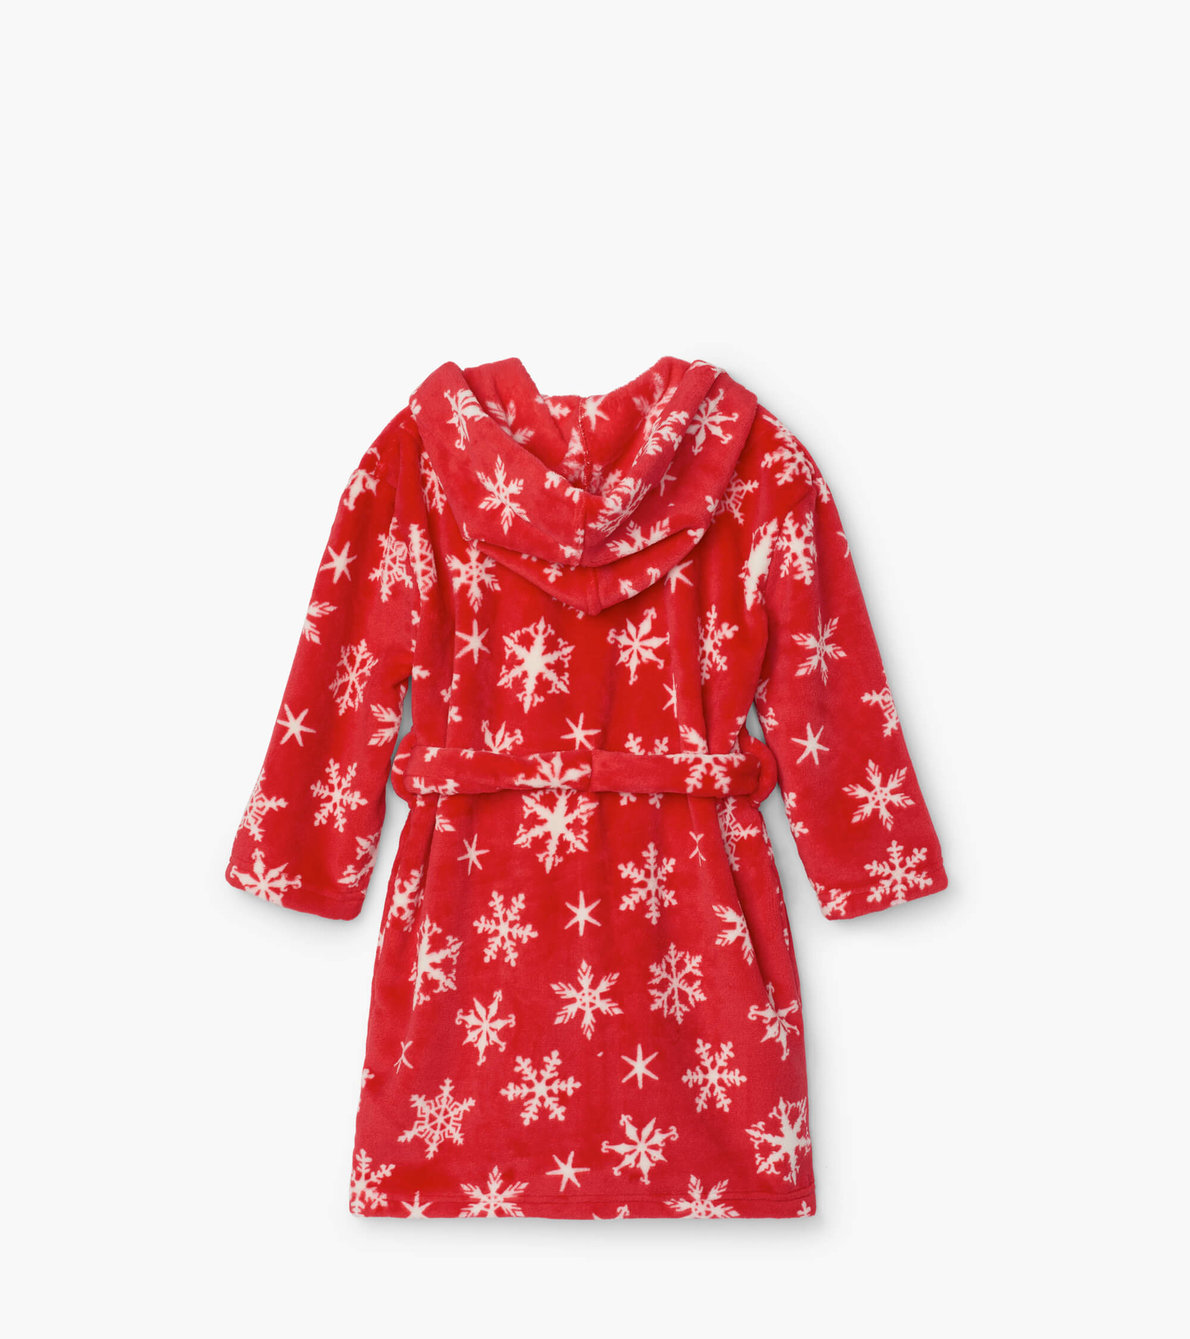 View larger image of Holiday Snowflakes Fleece Robe